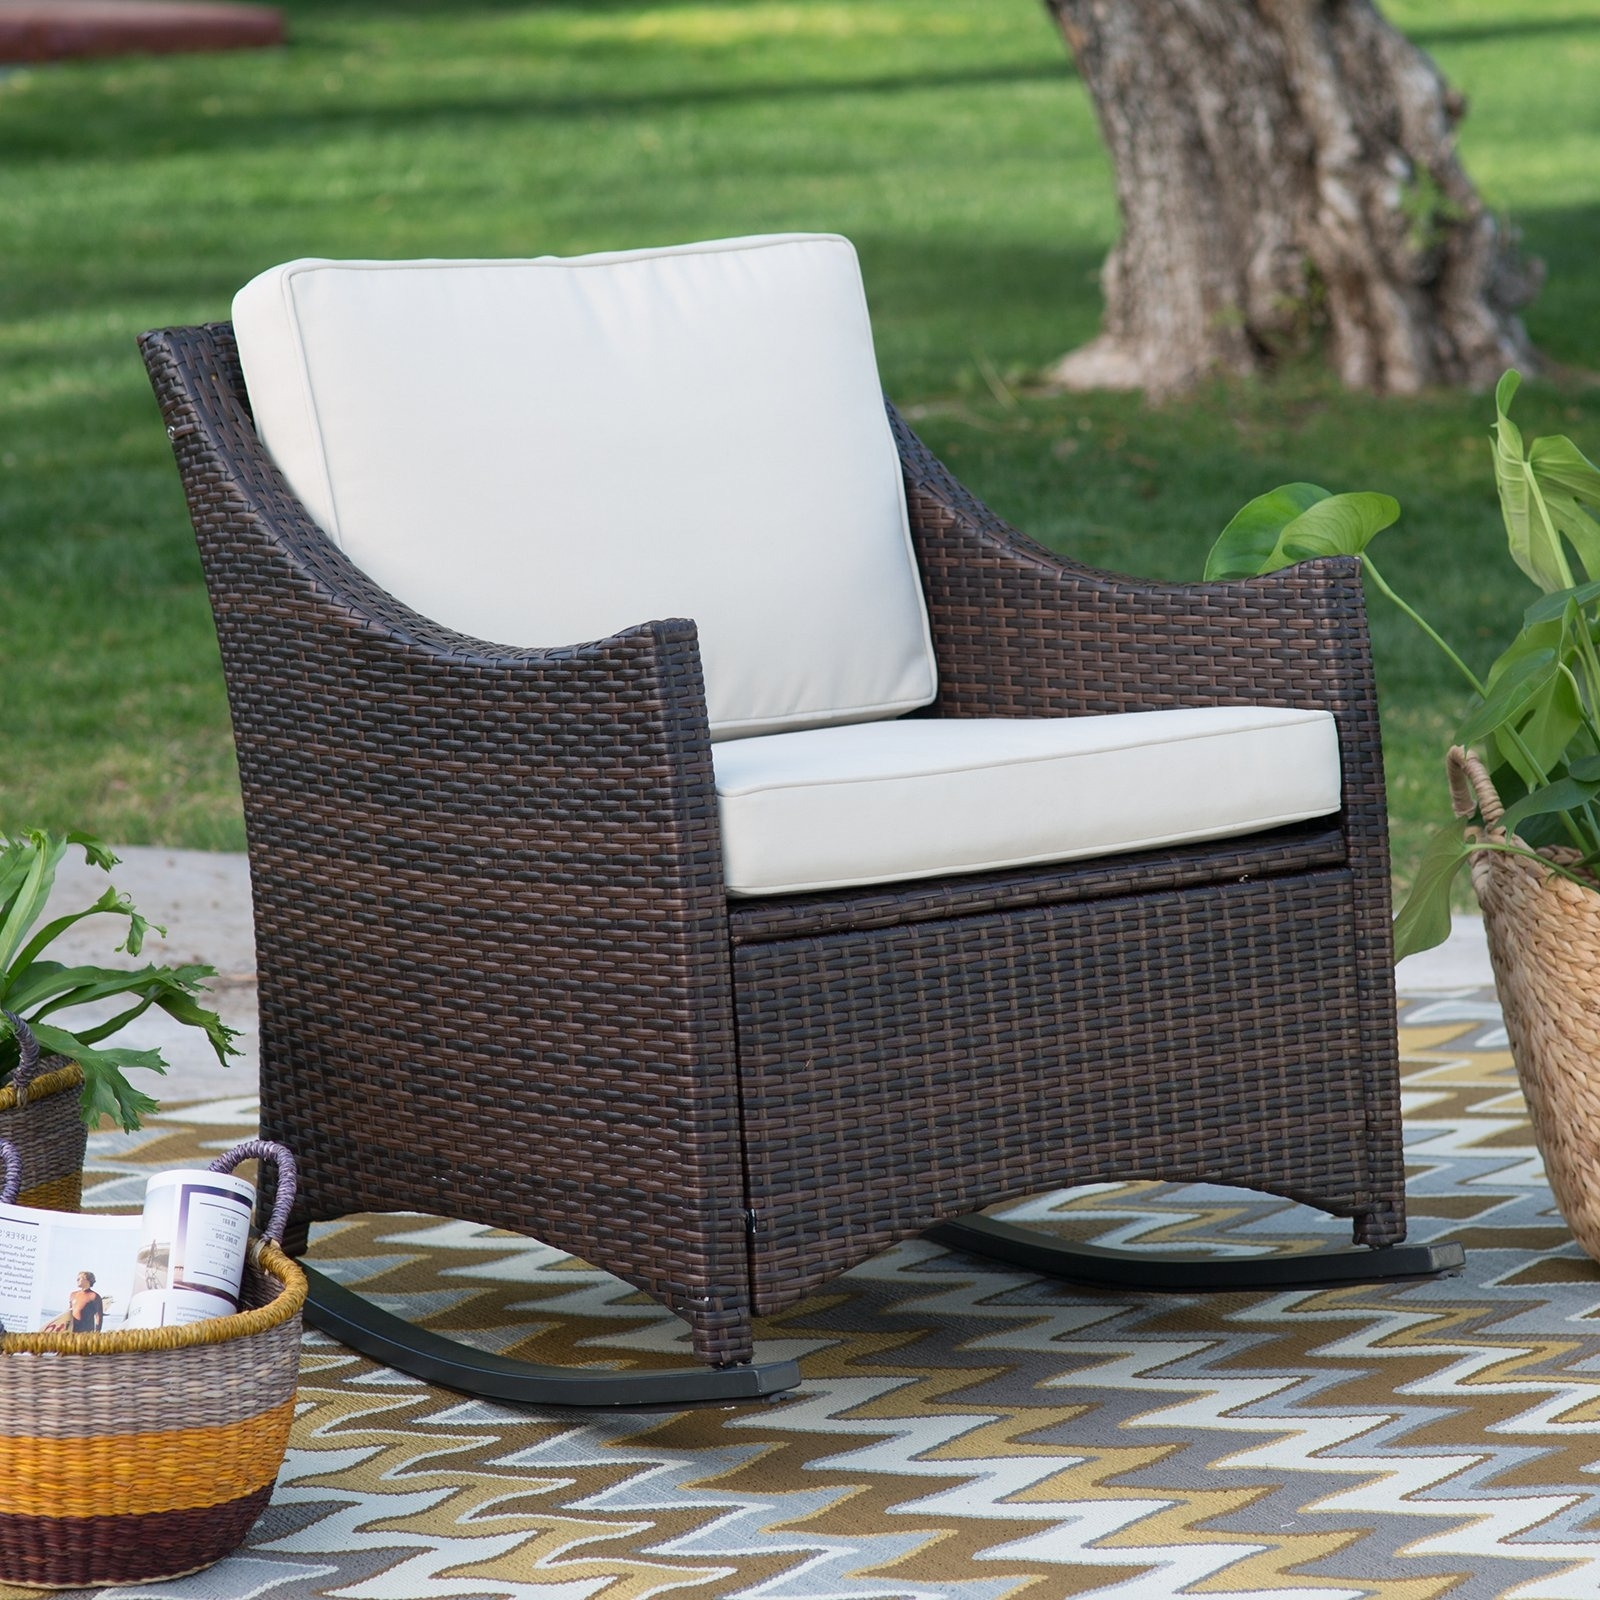 Most Current Outdoor Wicker Rocking Chairs Intended For Coral Coast Losani All Weather Wicker Outdoor Rocking Chair Look (View 7 of 15)